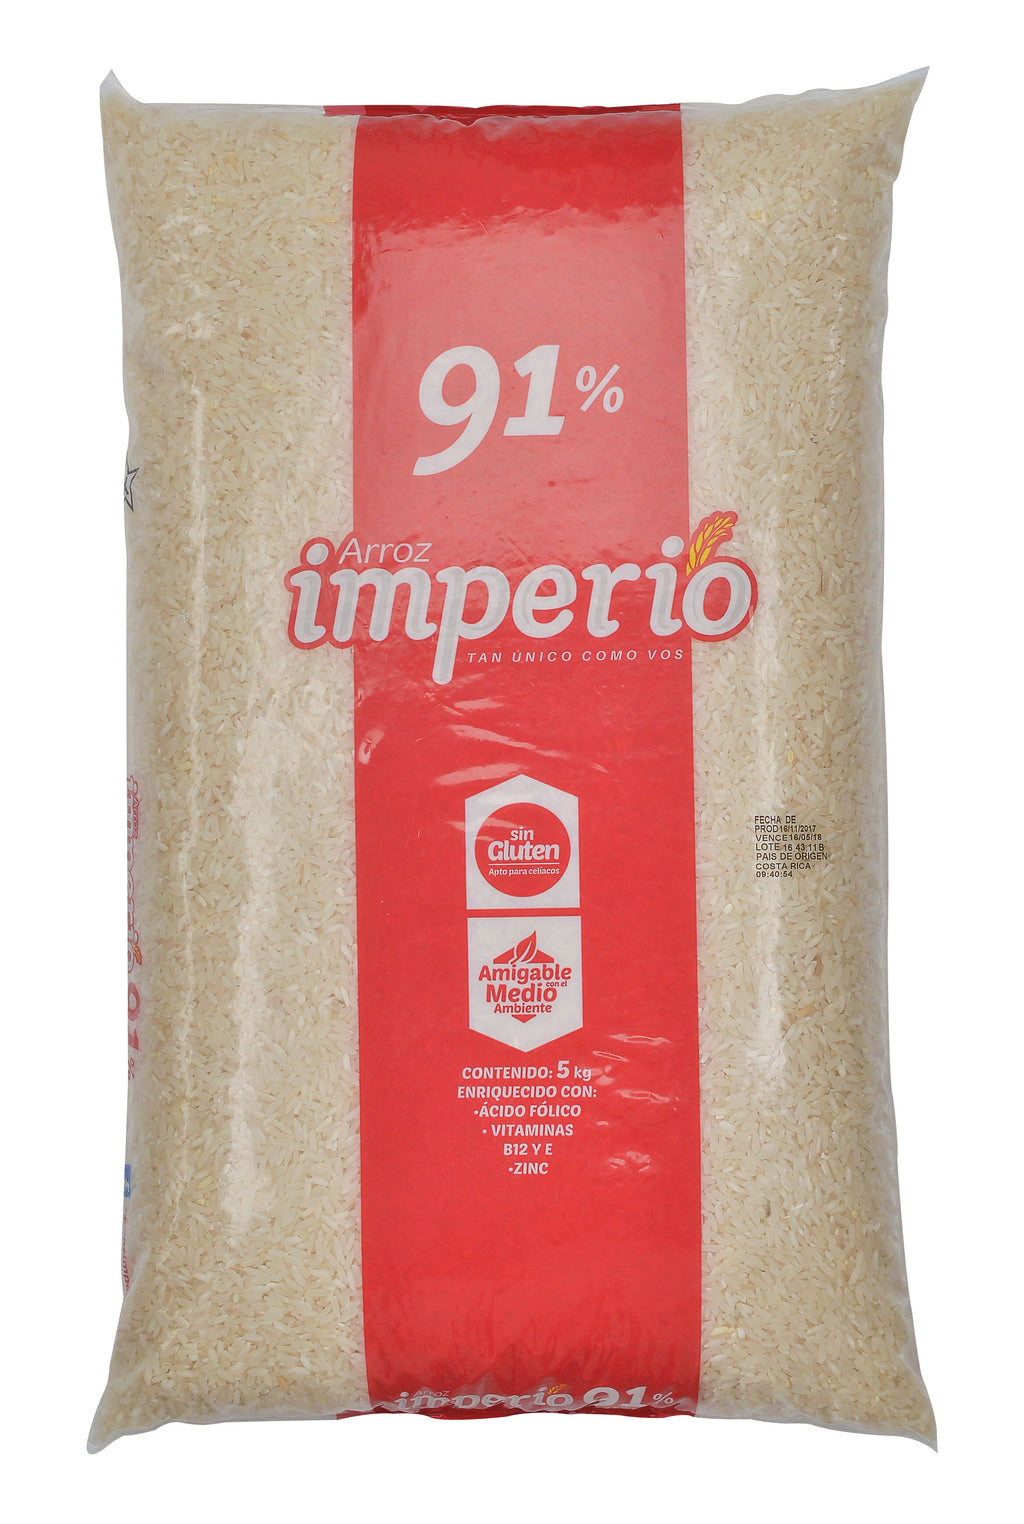 ARROZ IMPERIO 91% GRANO ENTERO